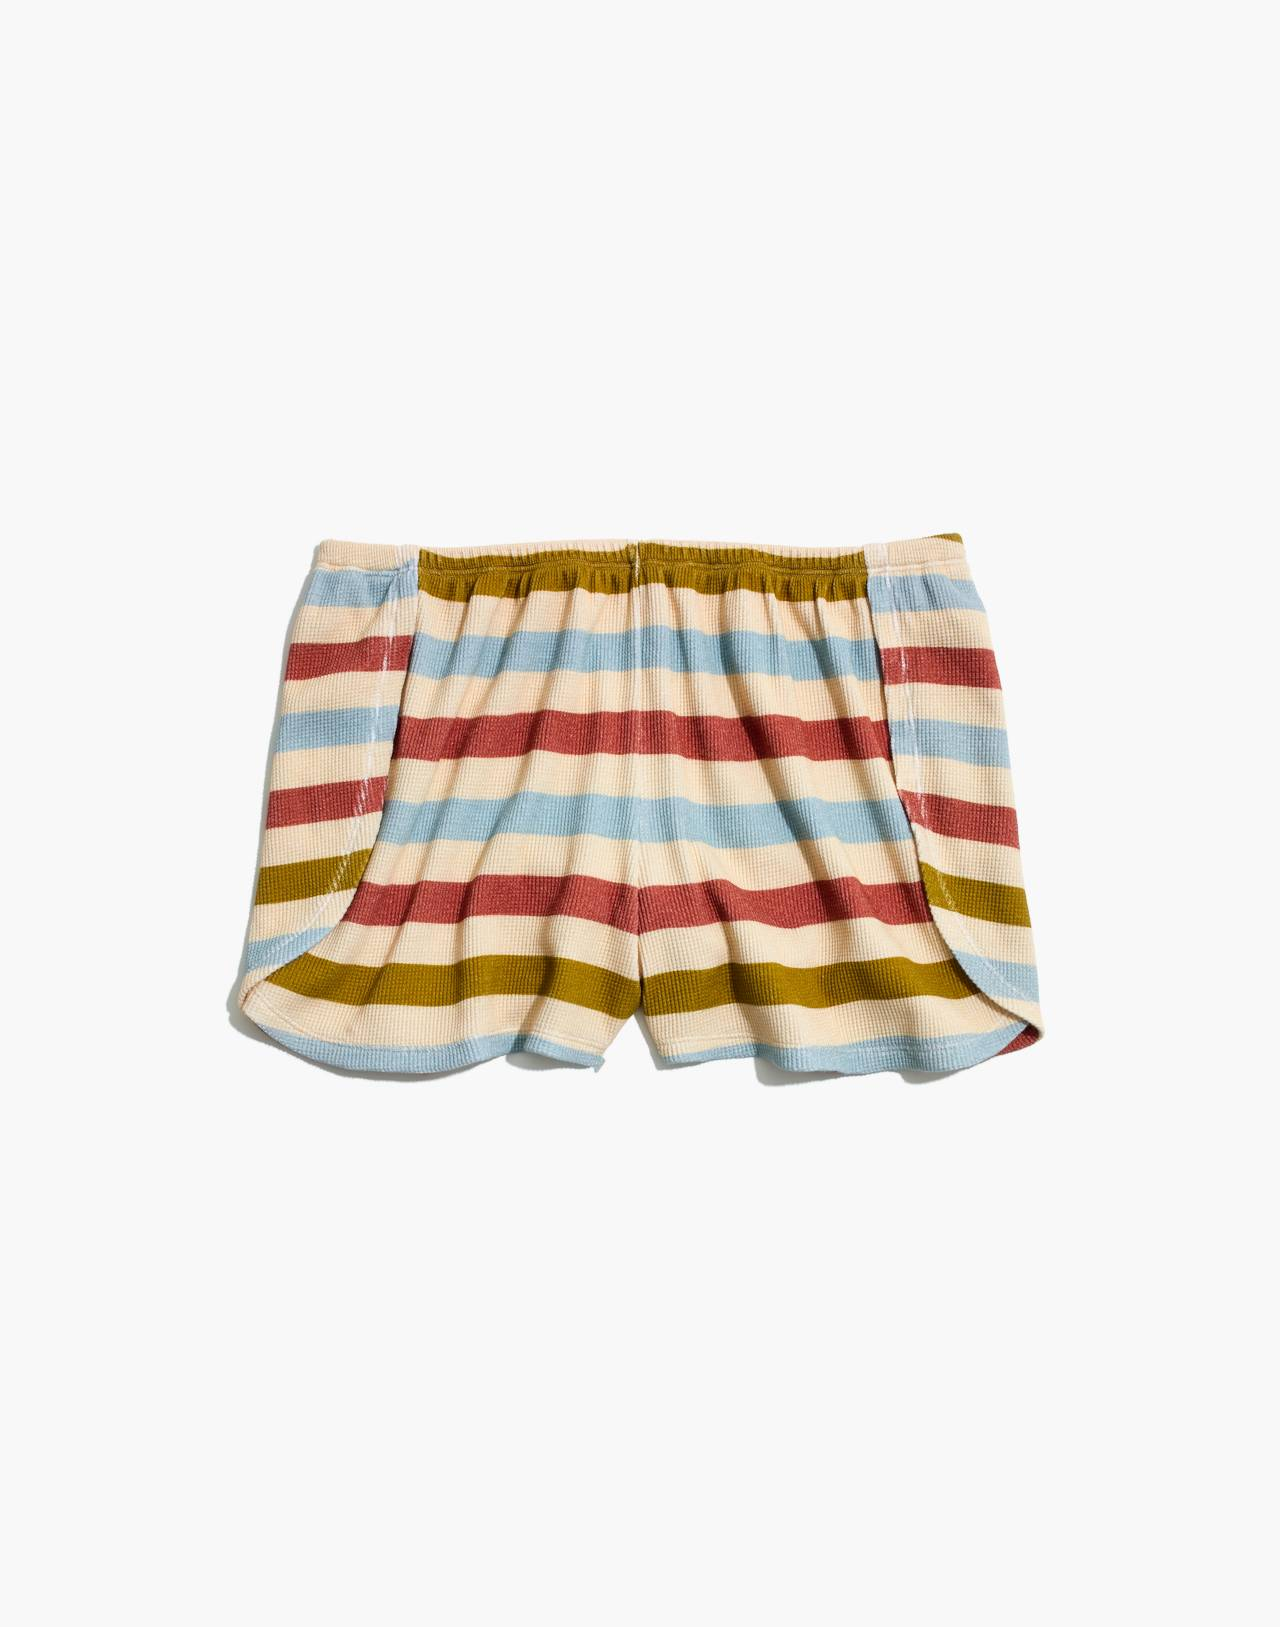 Waffle Knit Pajama Shorts in Hewitt Stripe in champagne image 4